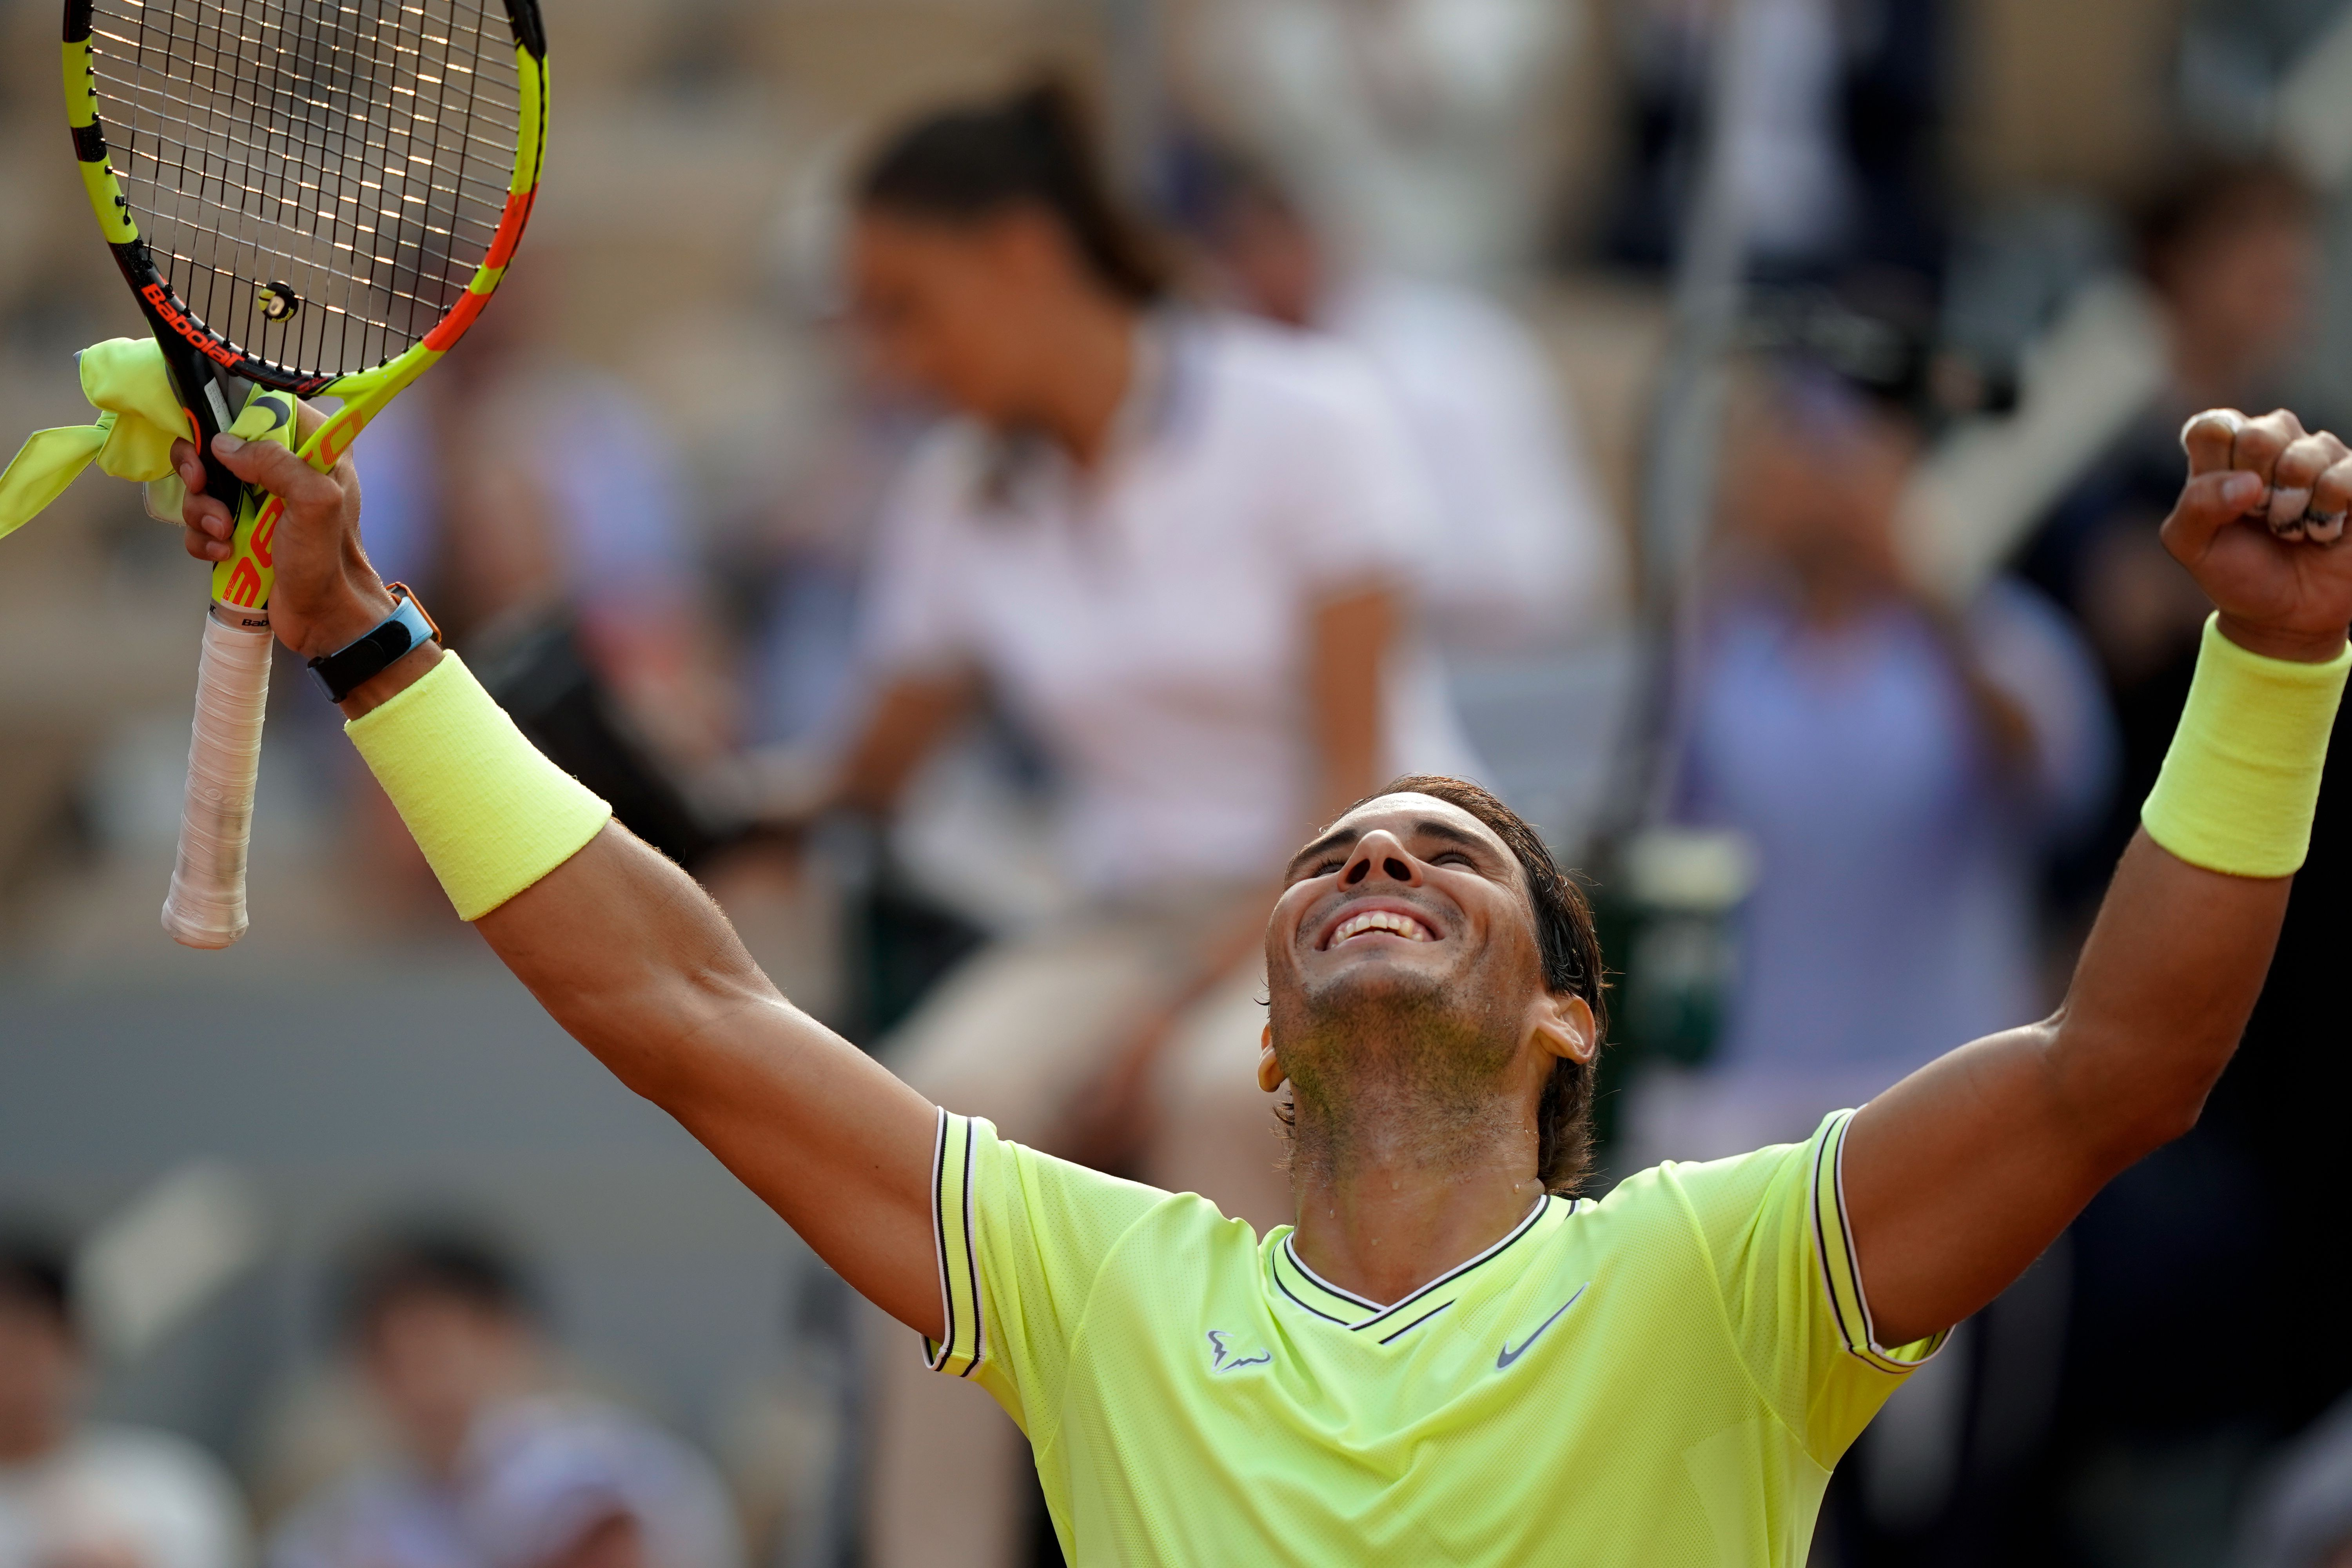 Rafael Nadal with his arms raised in the air